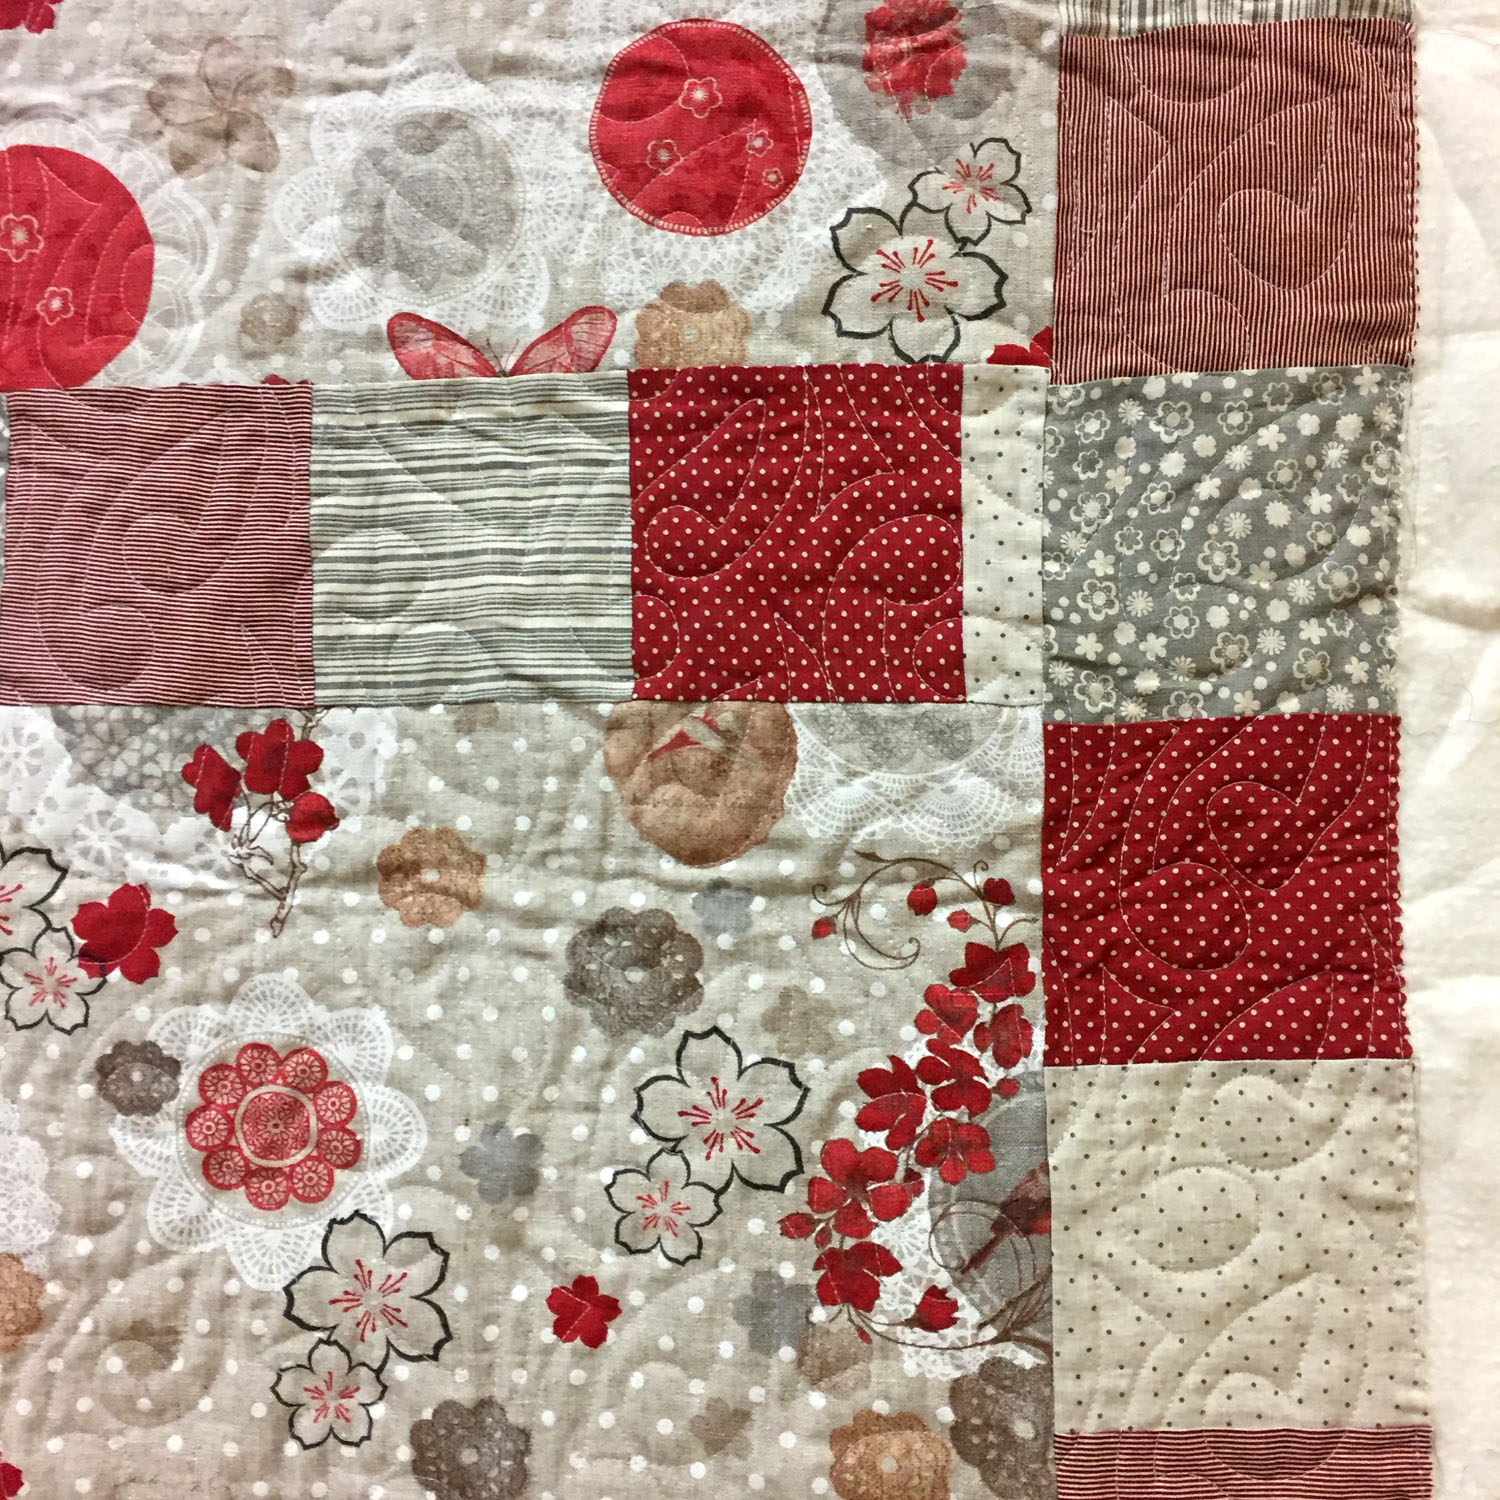 Copy of Copy of French linen quilt detail. By Susan Sato